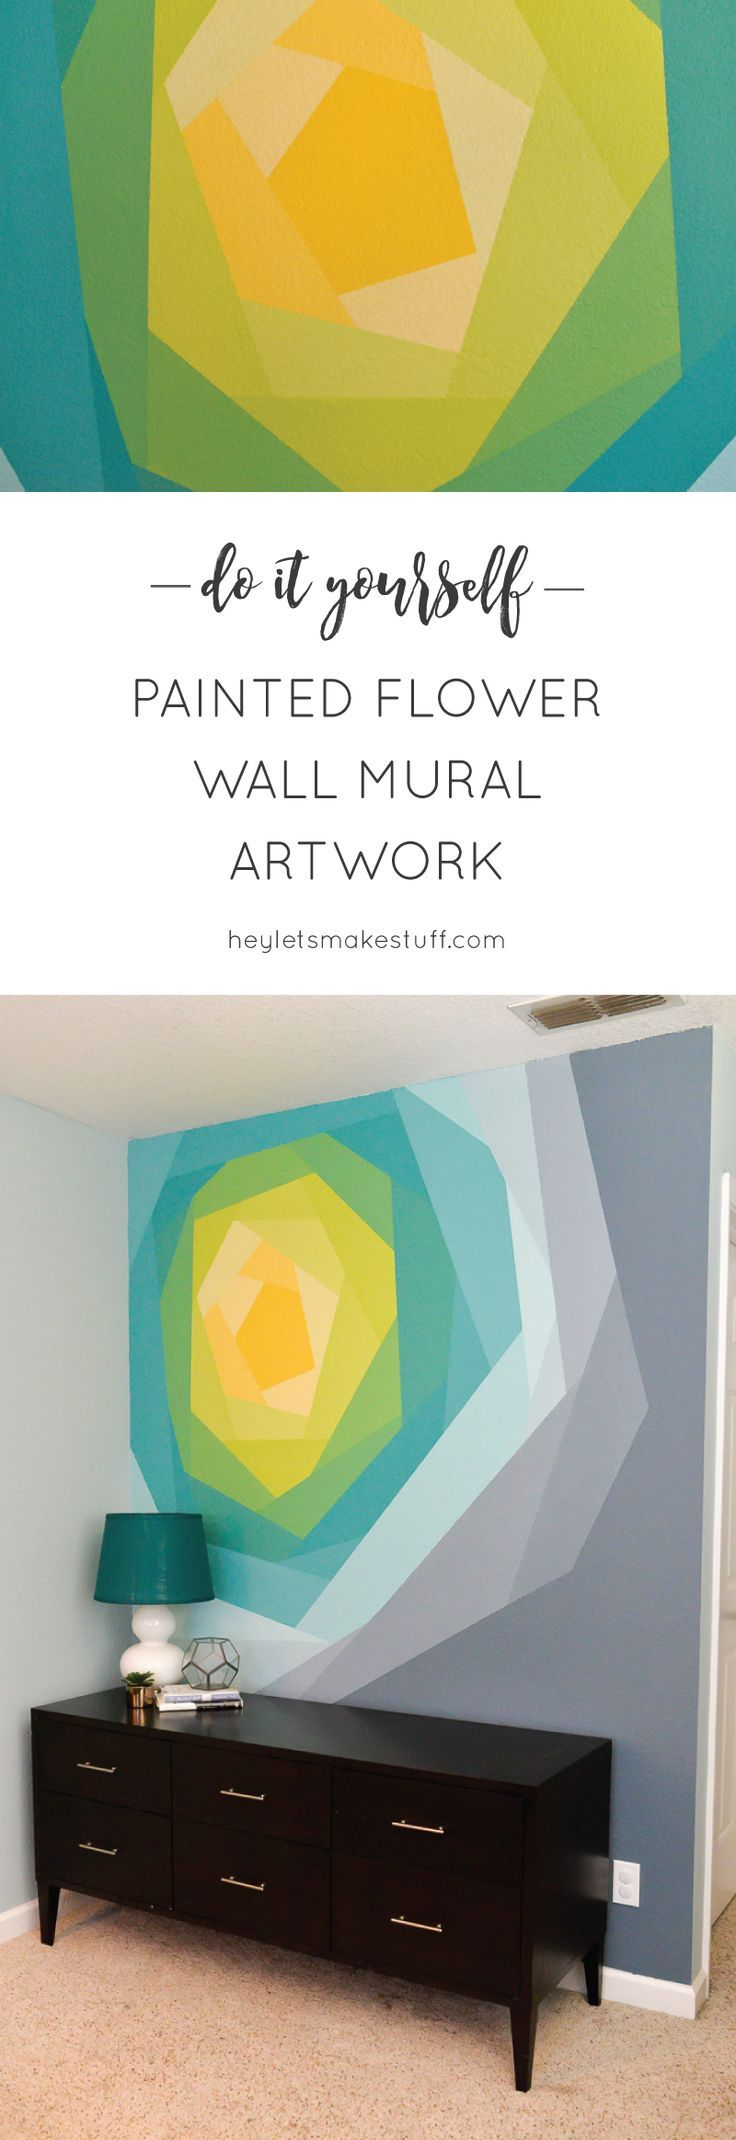 How To Paint A Wall Mural 25+ best painted wall murals ideas on pinterest | wall murals